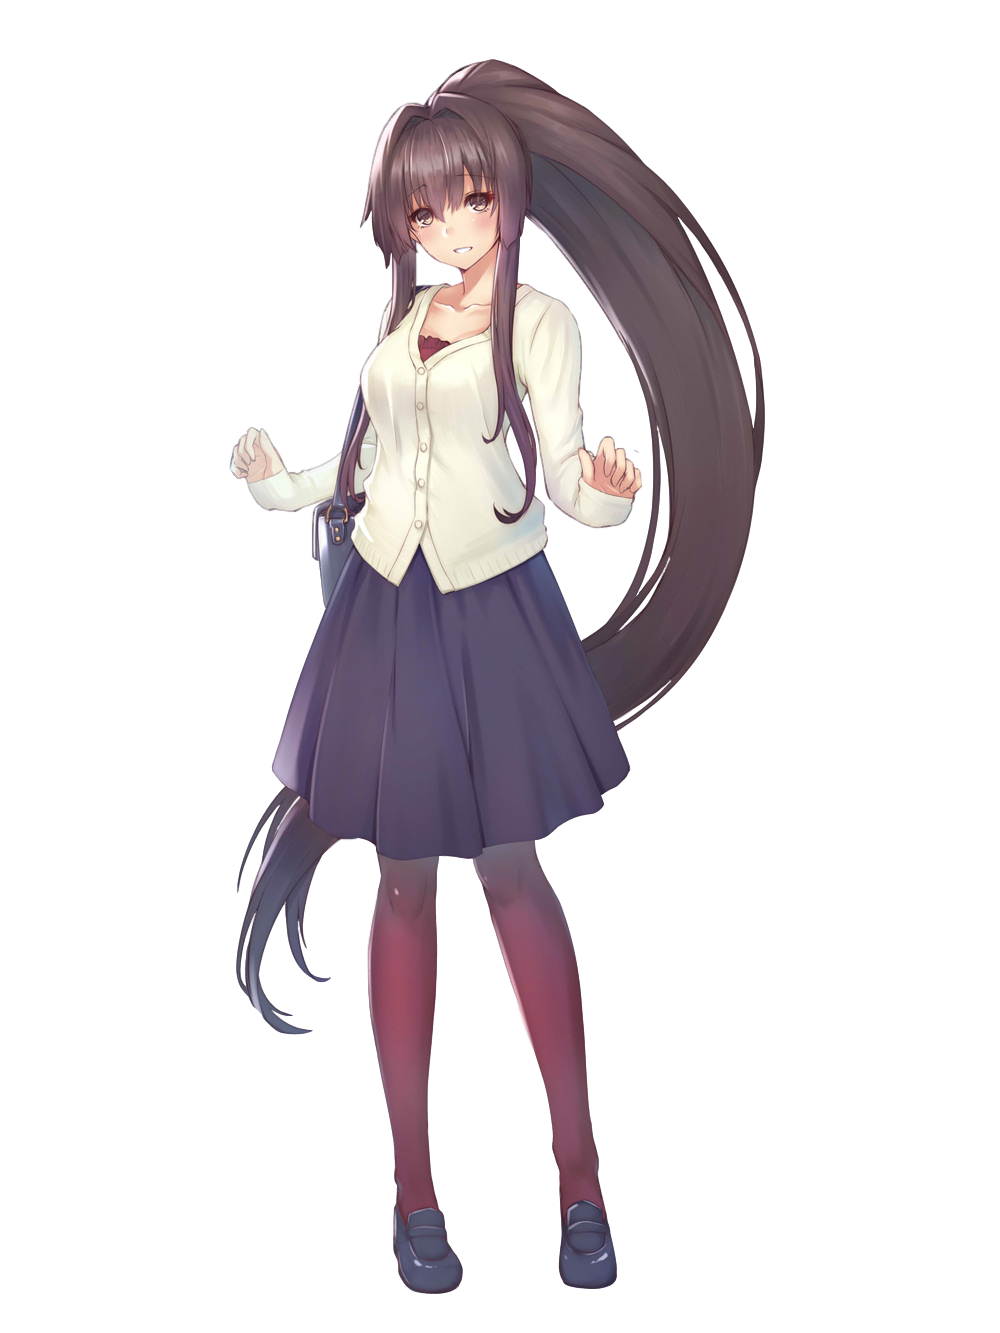 Kantai collection yamato render by tsadeek on deviantart - Yamato render ...